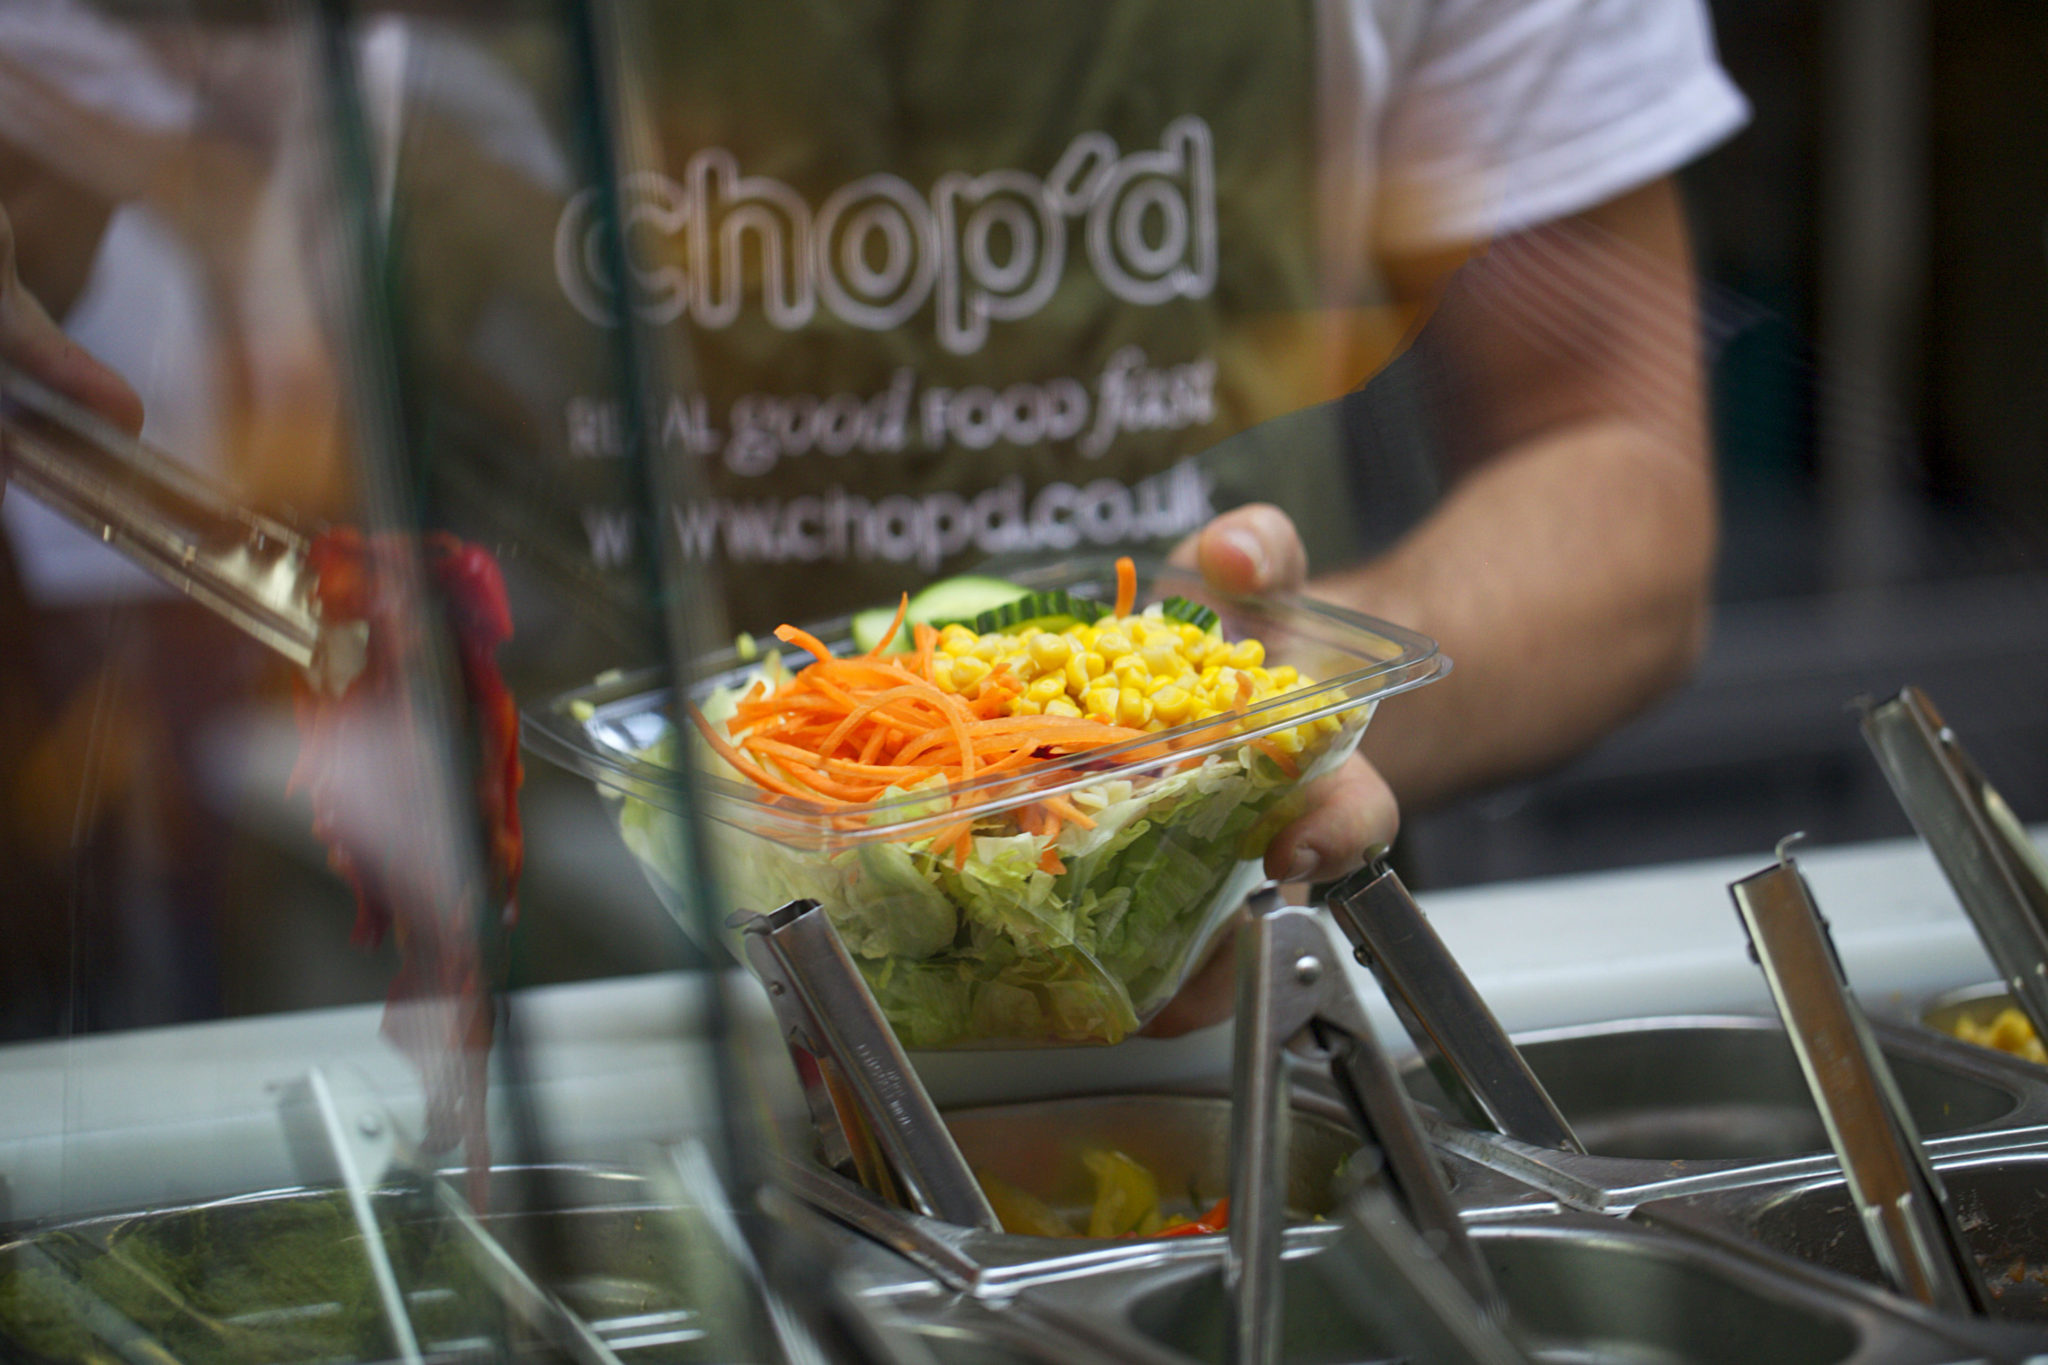 Sustainably sourced high street eatery, Chop'd joins retail group.